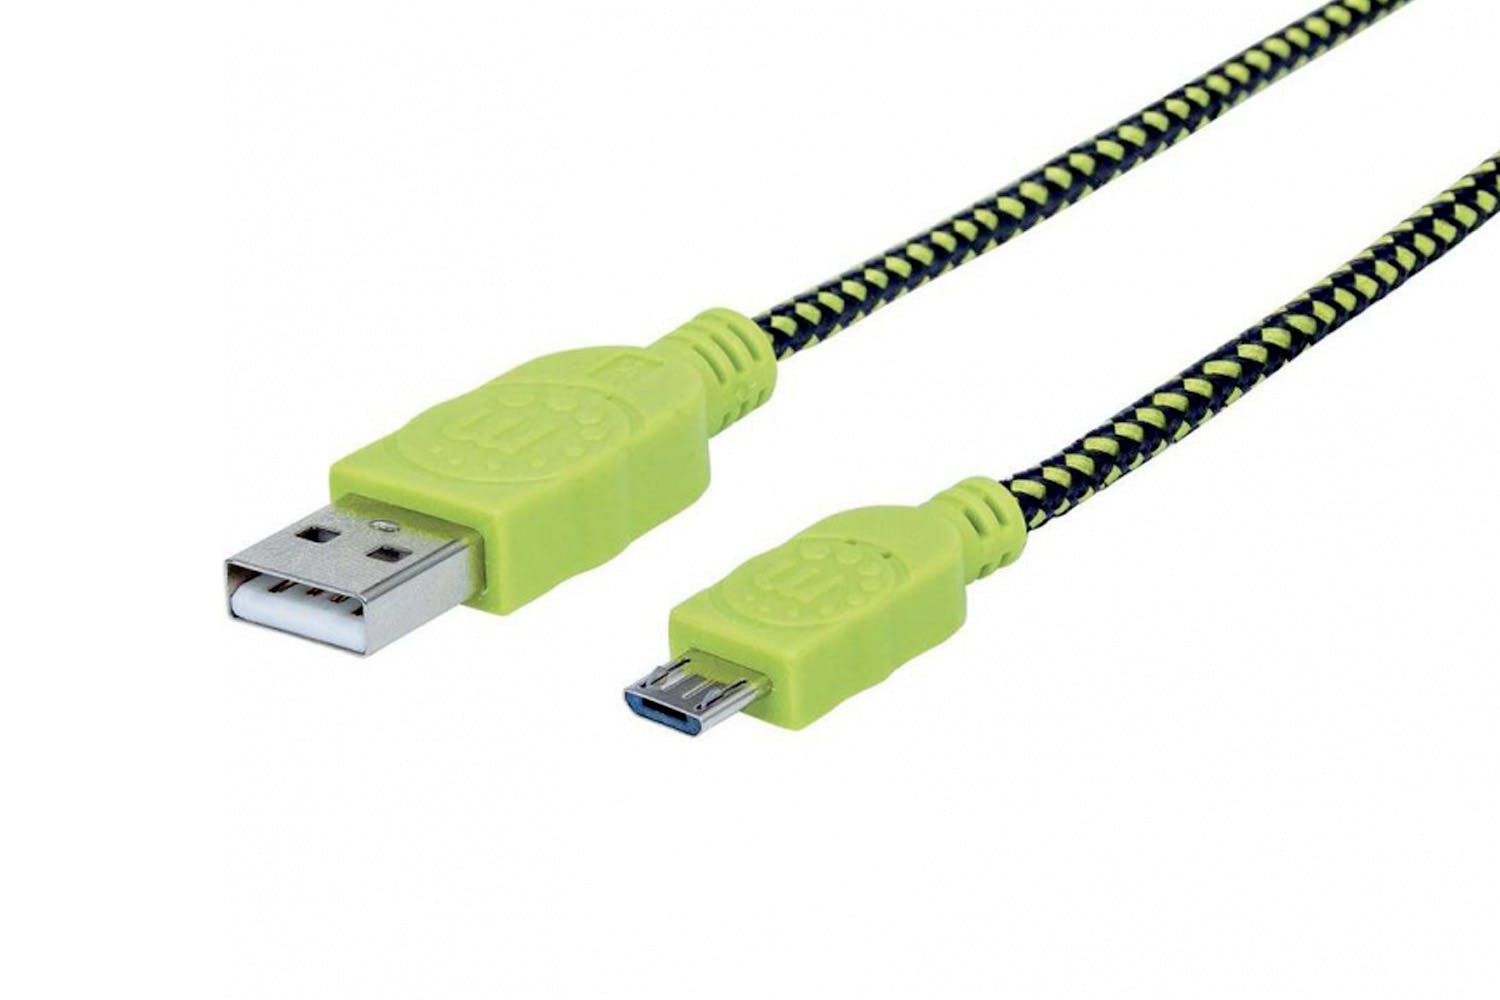 Manhattan Micro USB Cable 1.8 m | 394055